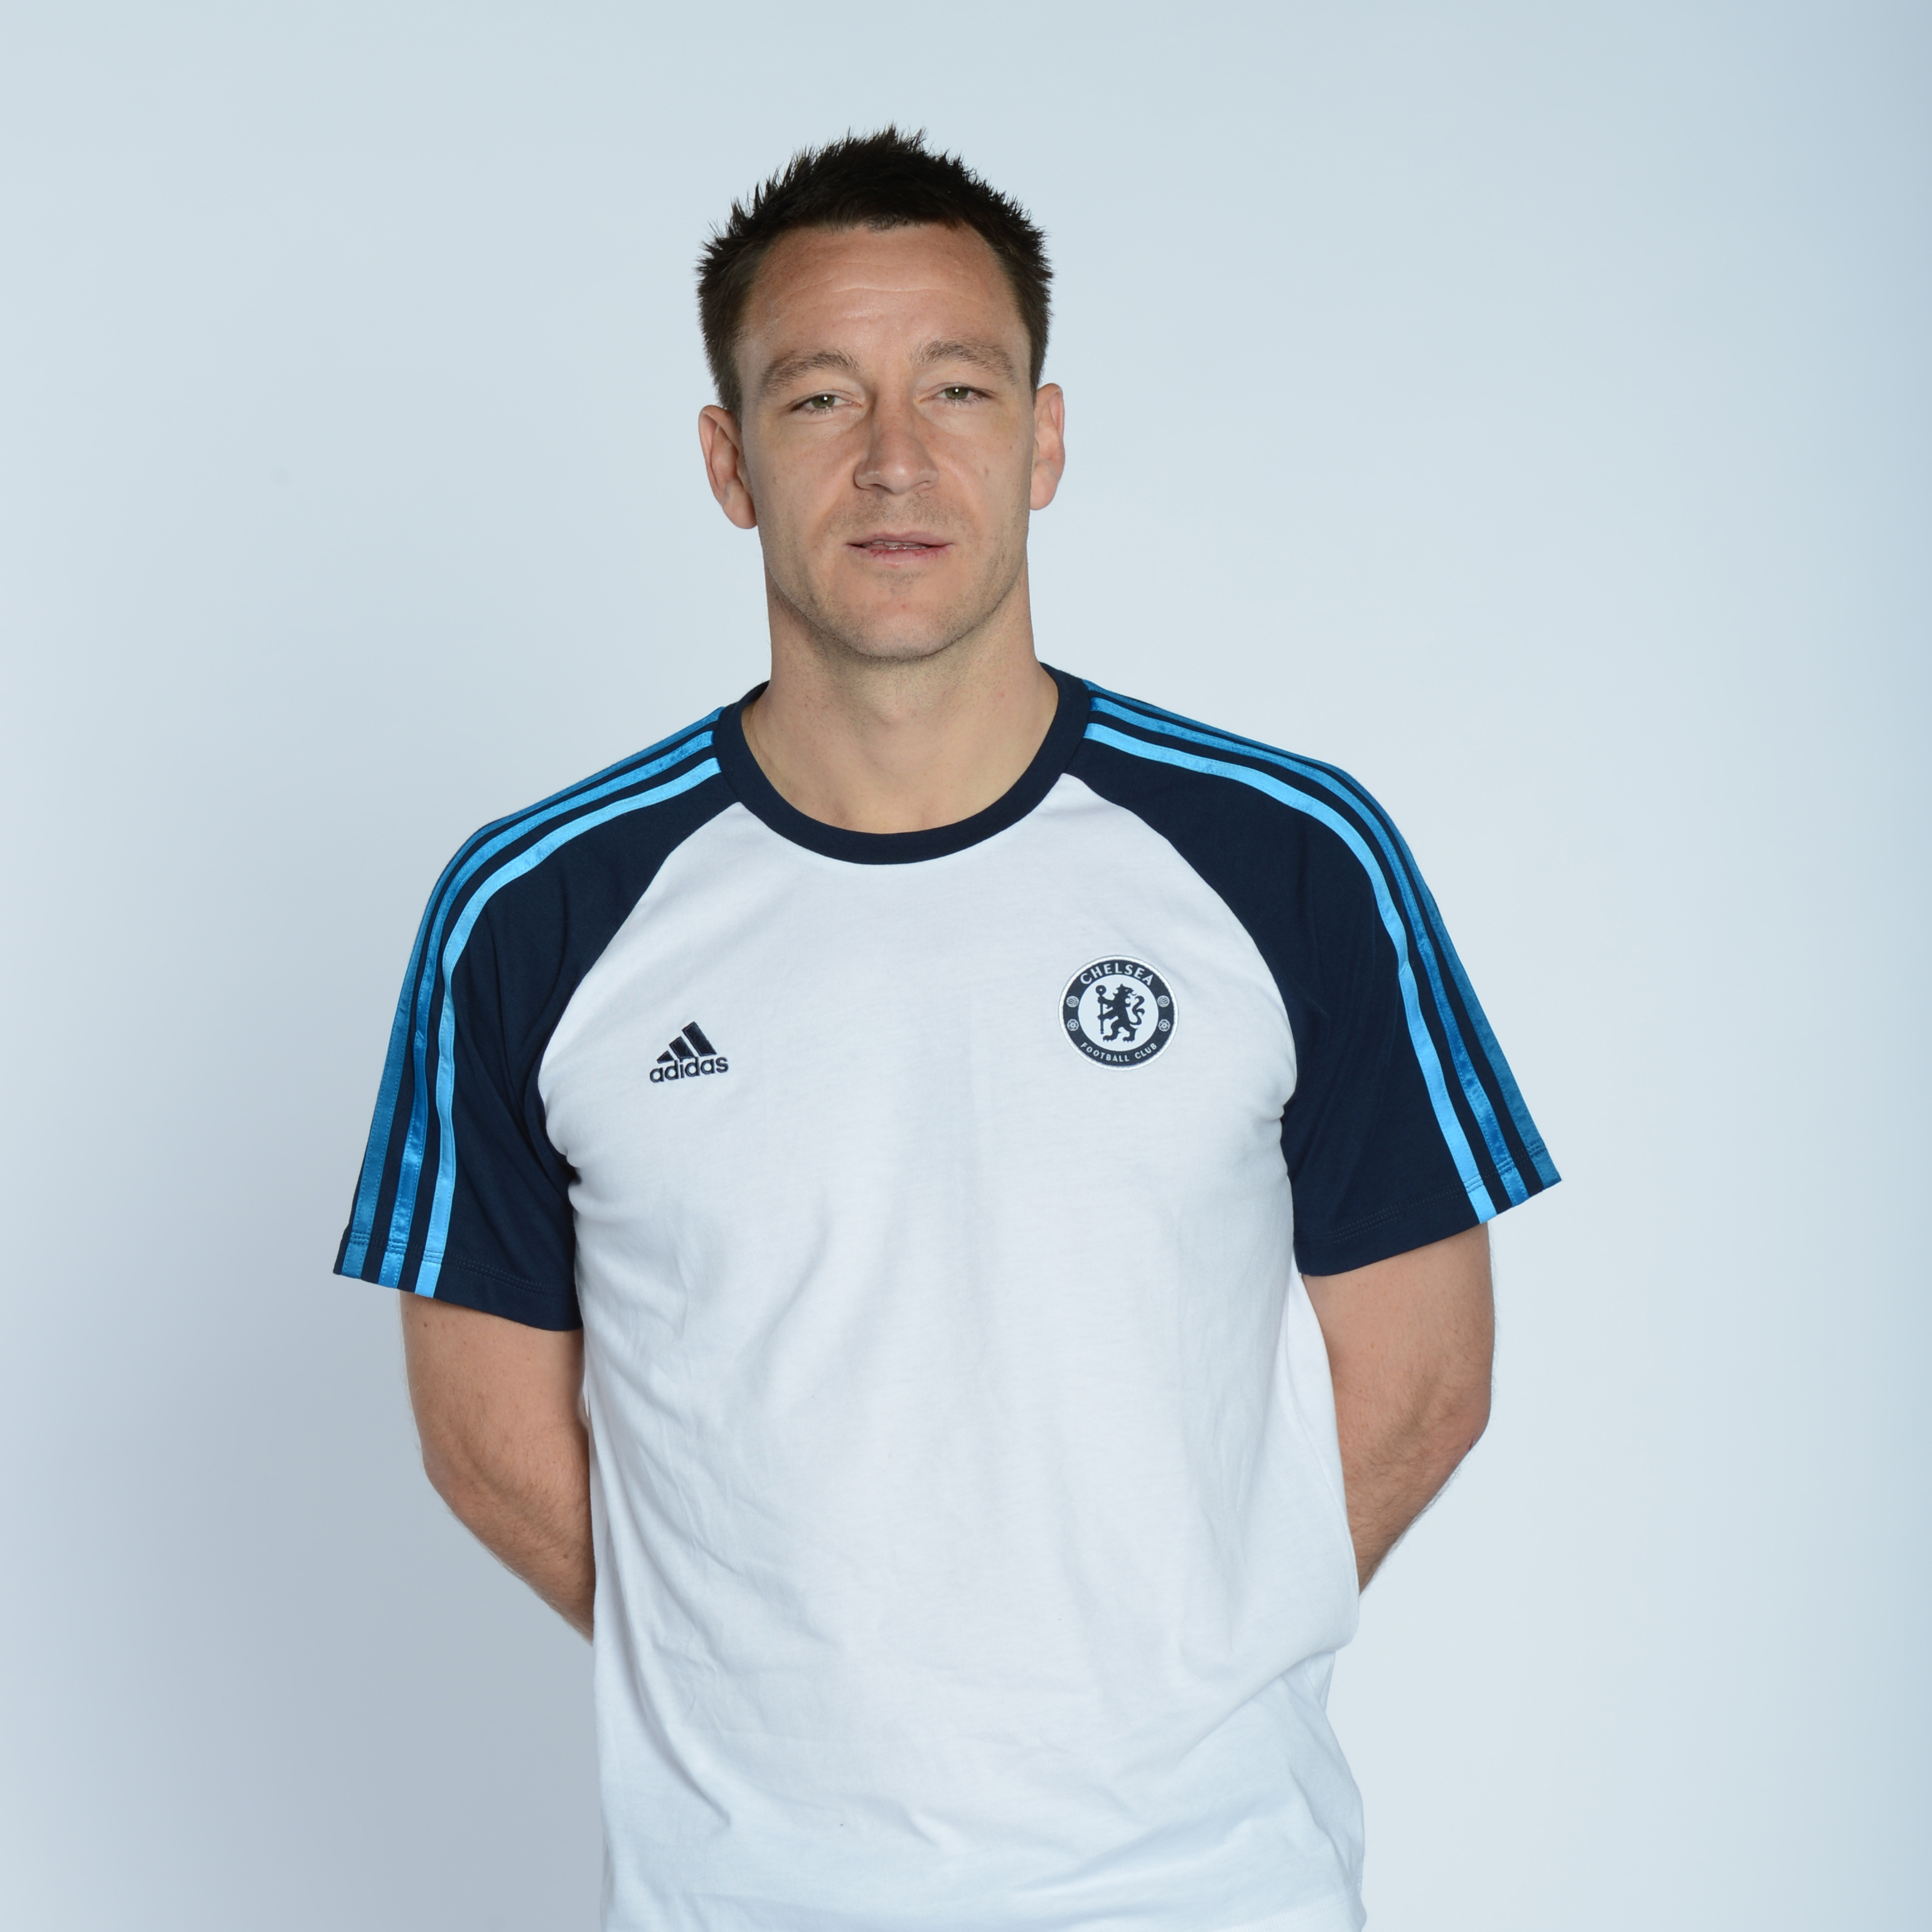 adidas Chelsea Core T-Shirt - Collegiate Navy/White/Cyan